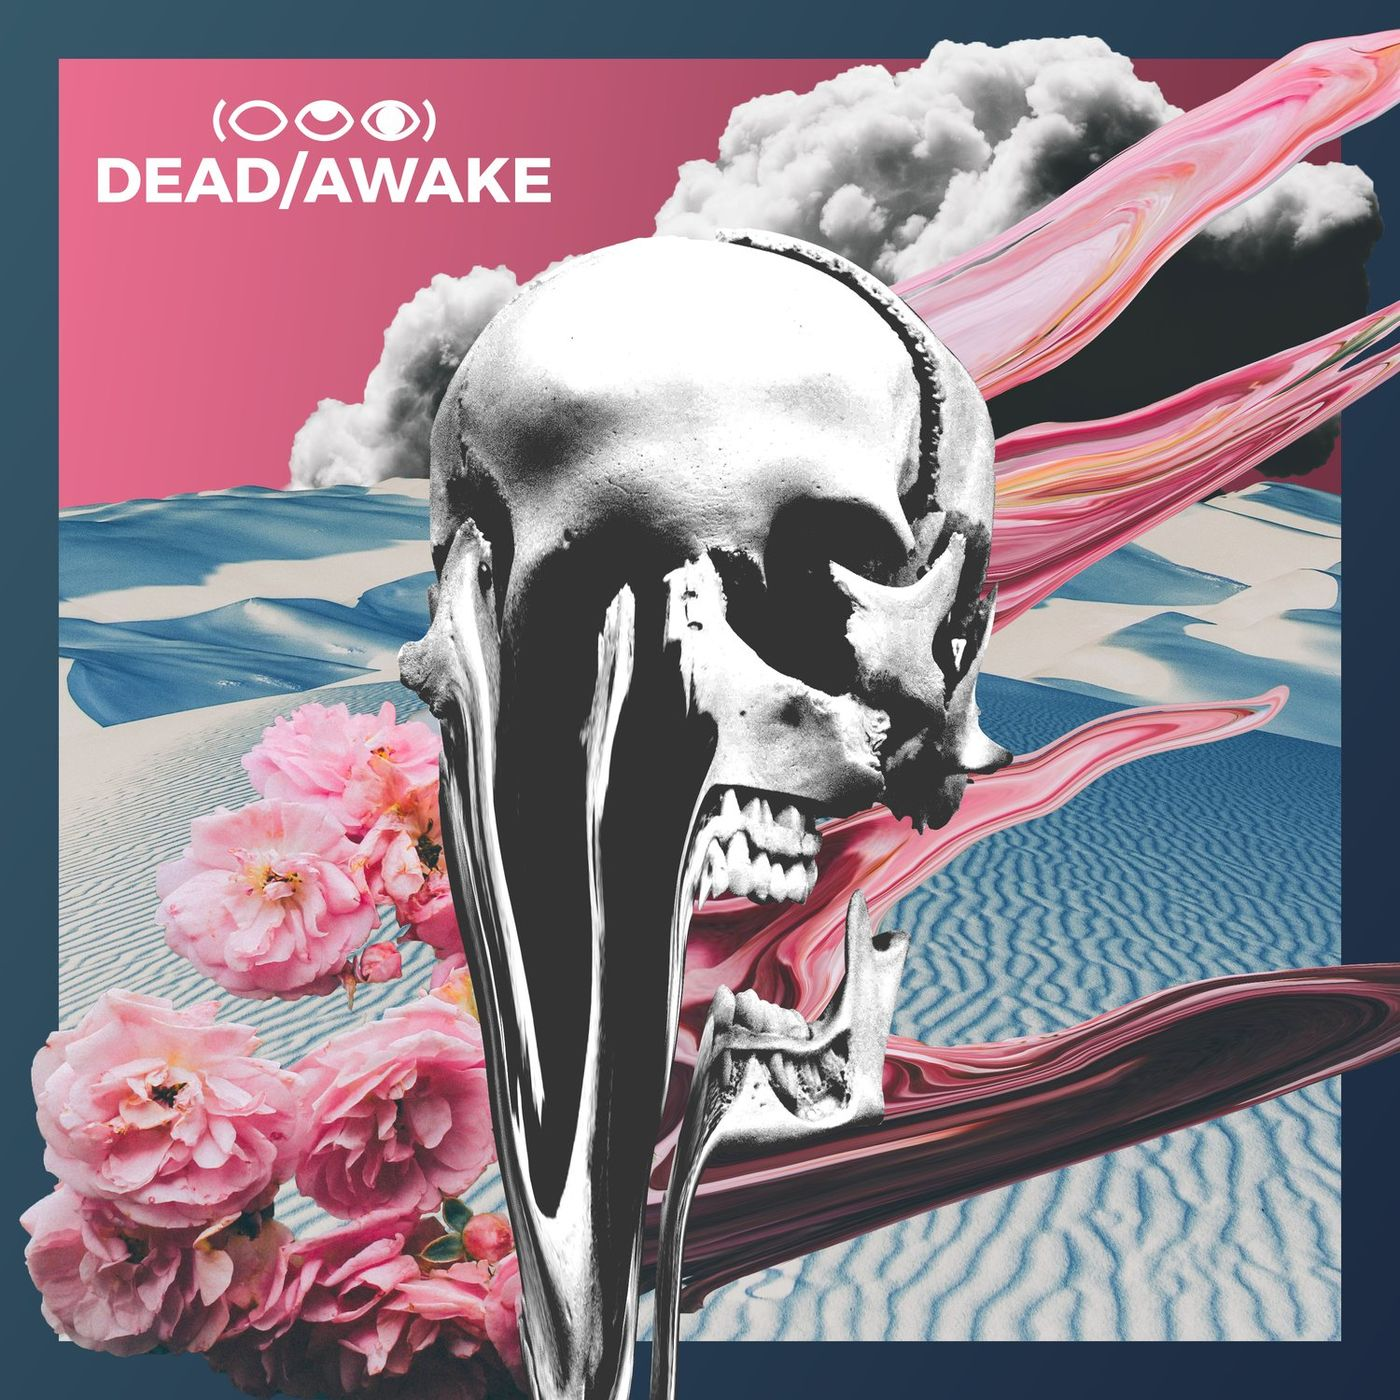 Dead/Awake - The End [single] (2021)